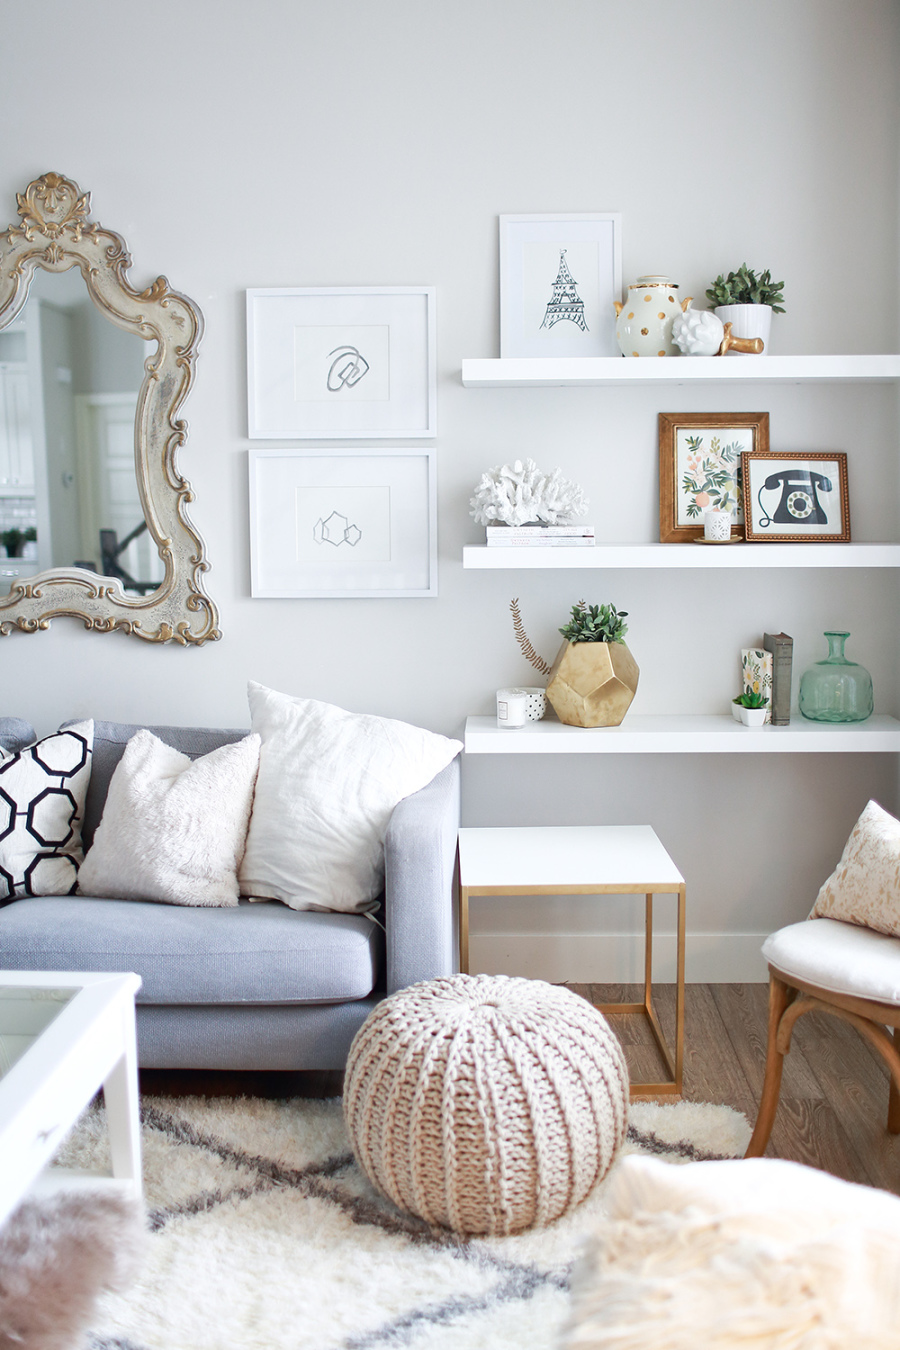 Organize Living Room Ideas: Easy Ways To Organize Your Living Room This Spring